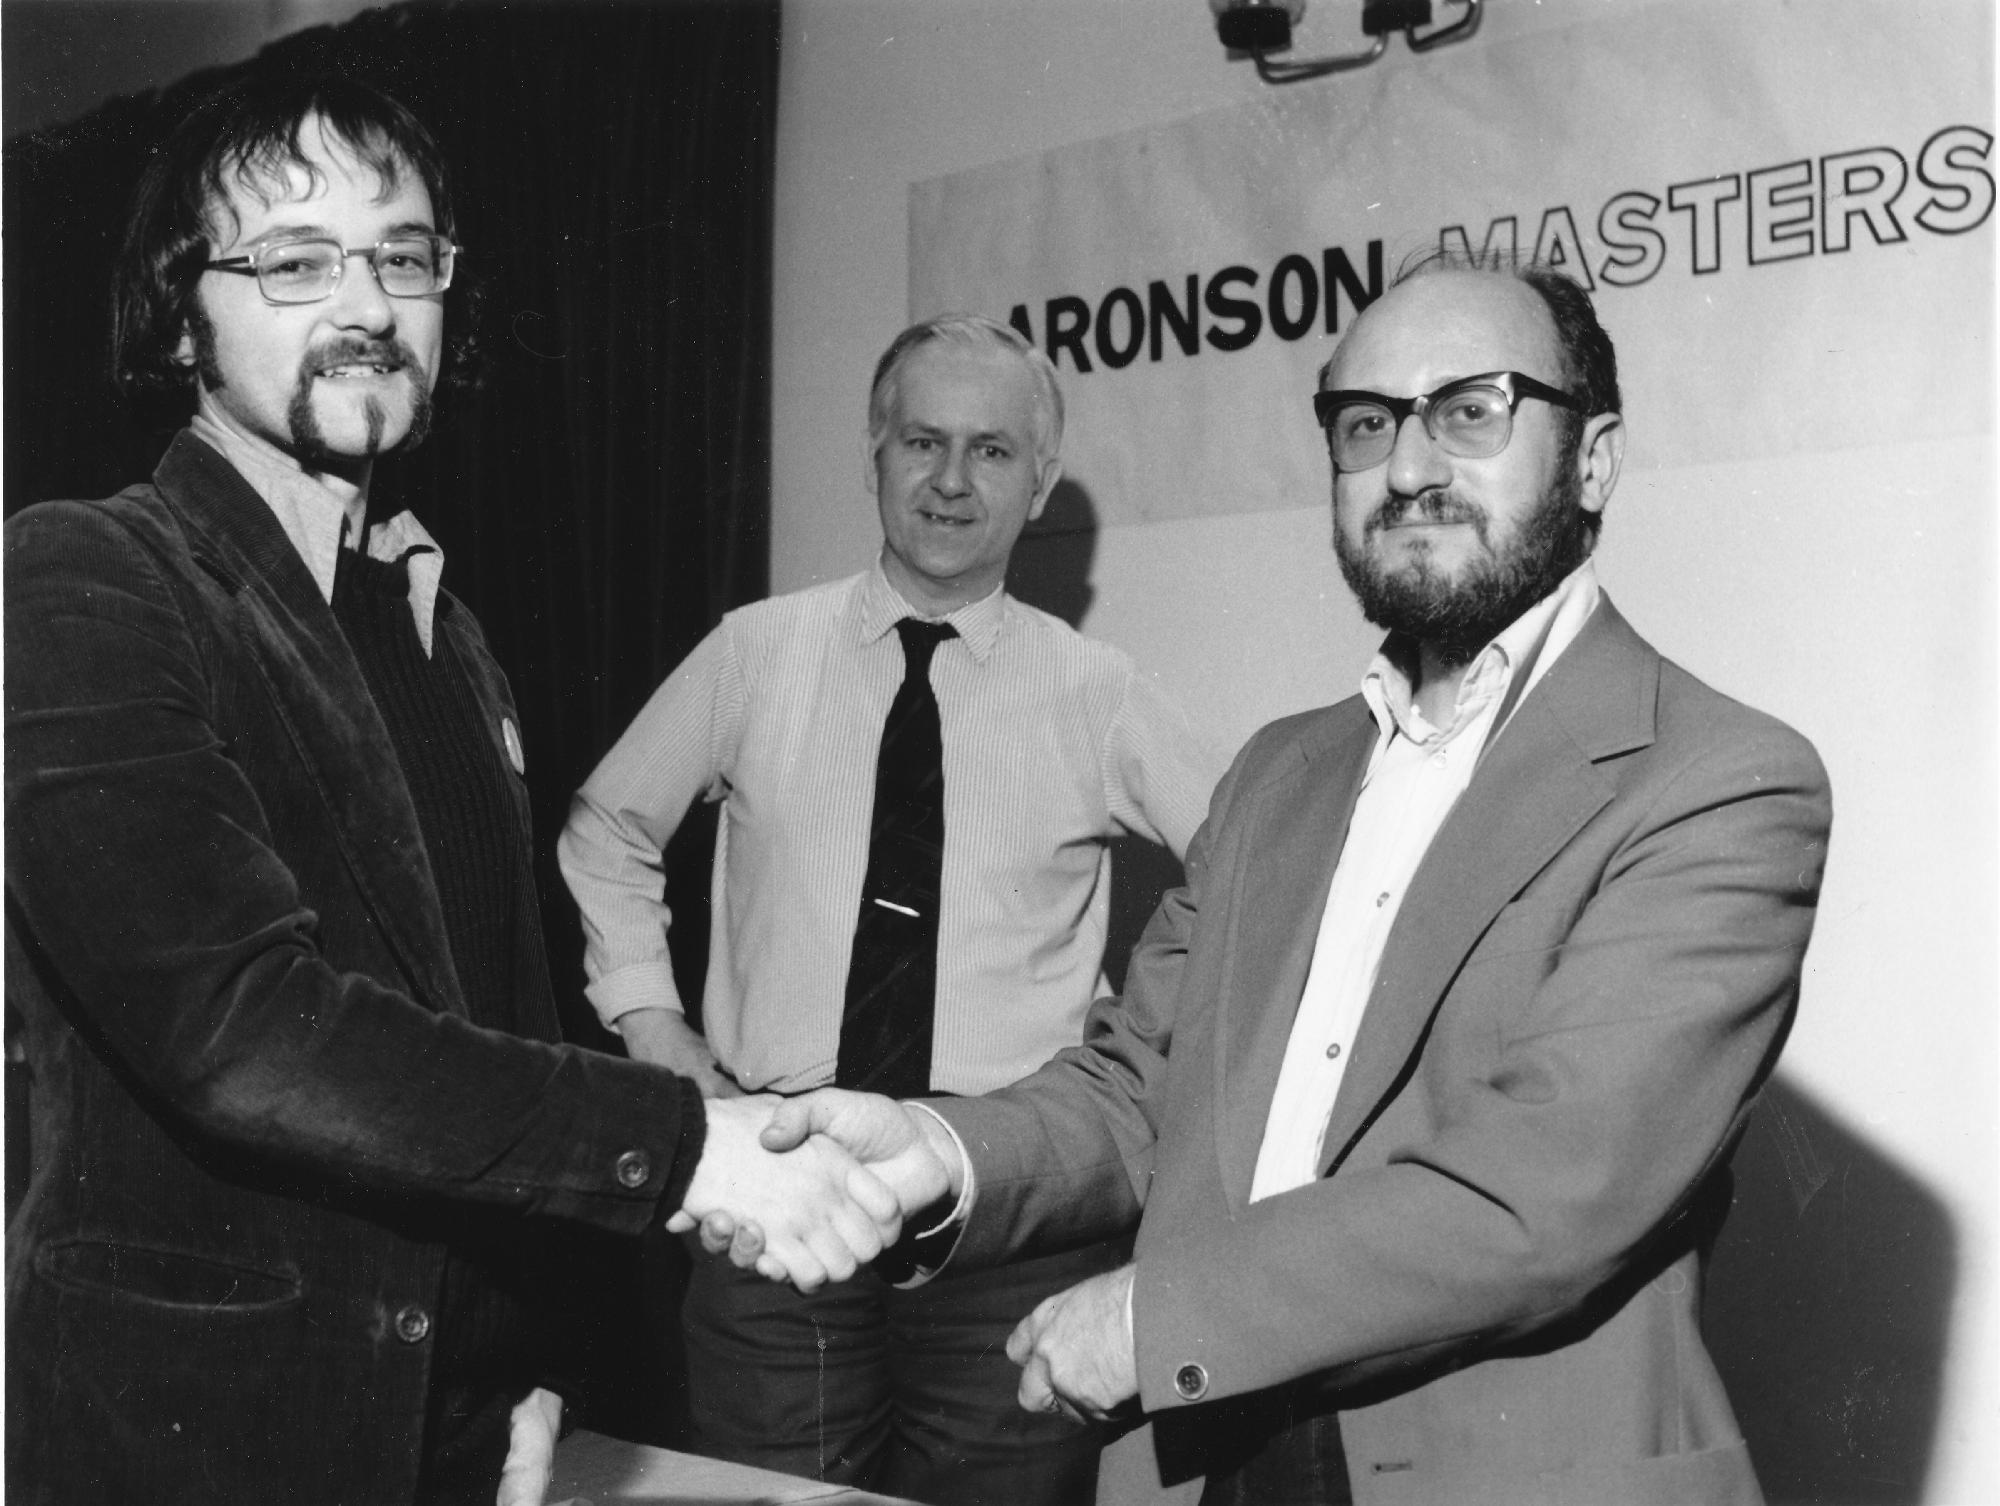 Robert Bellin with Leonard Barden and Stewart Reuben at the 1978 Aaronson Masters in London